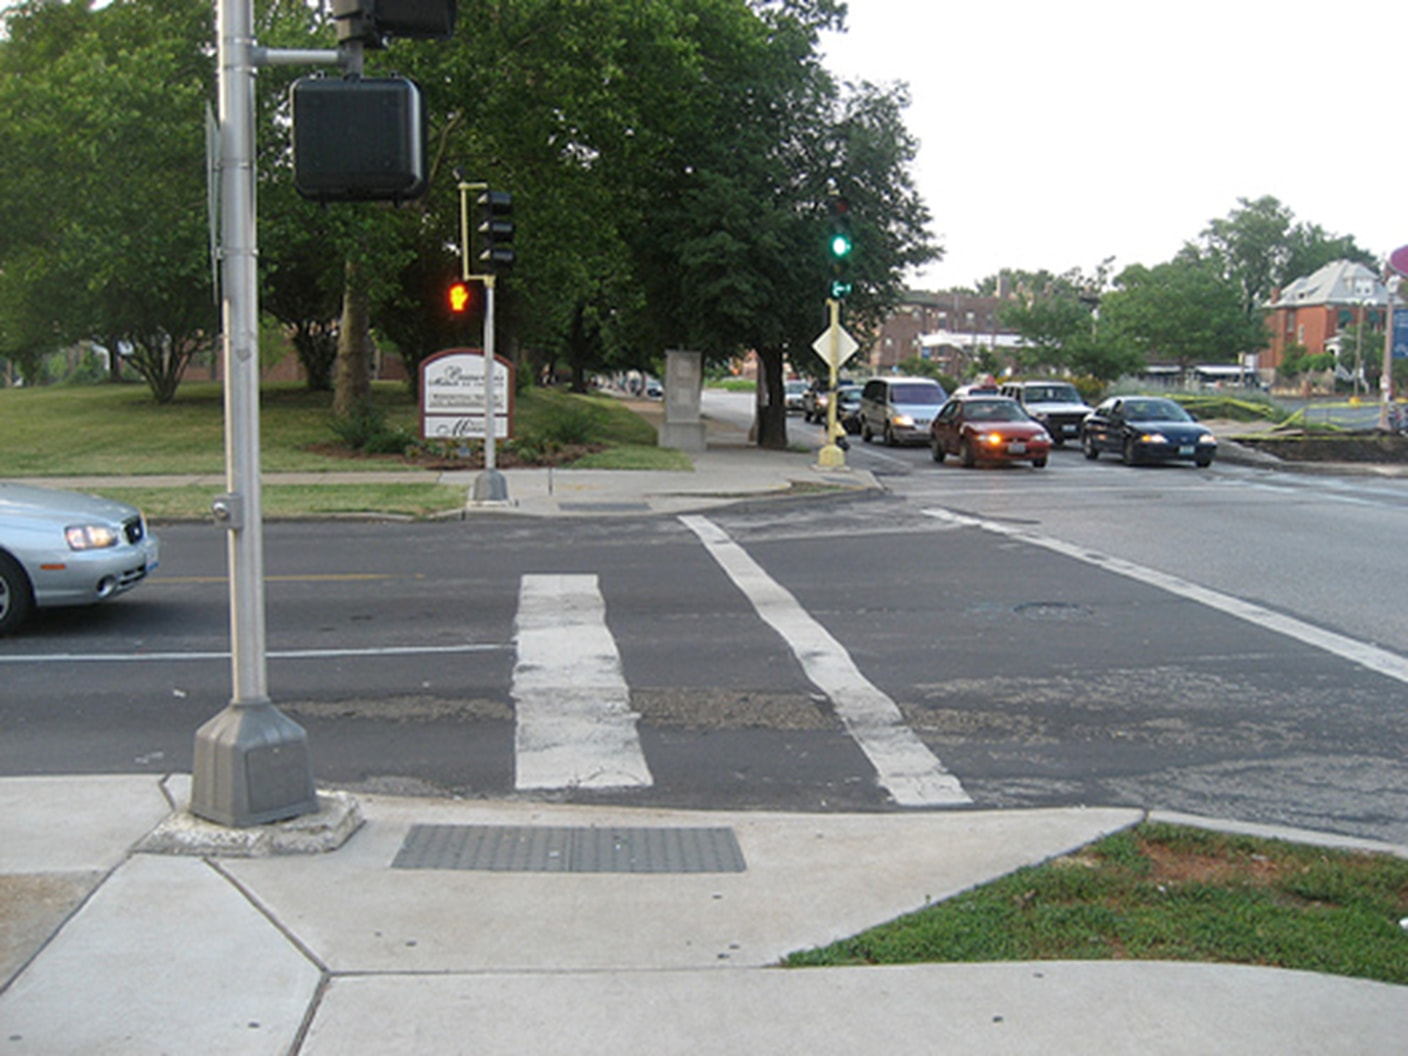 crosswalk not aligned with visually impaired walking devices